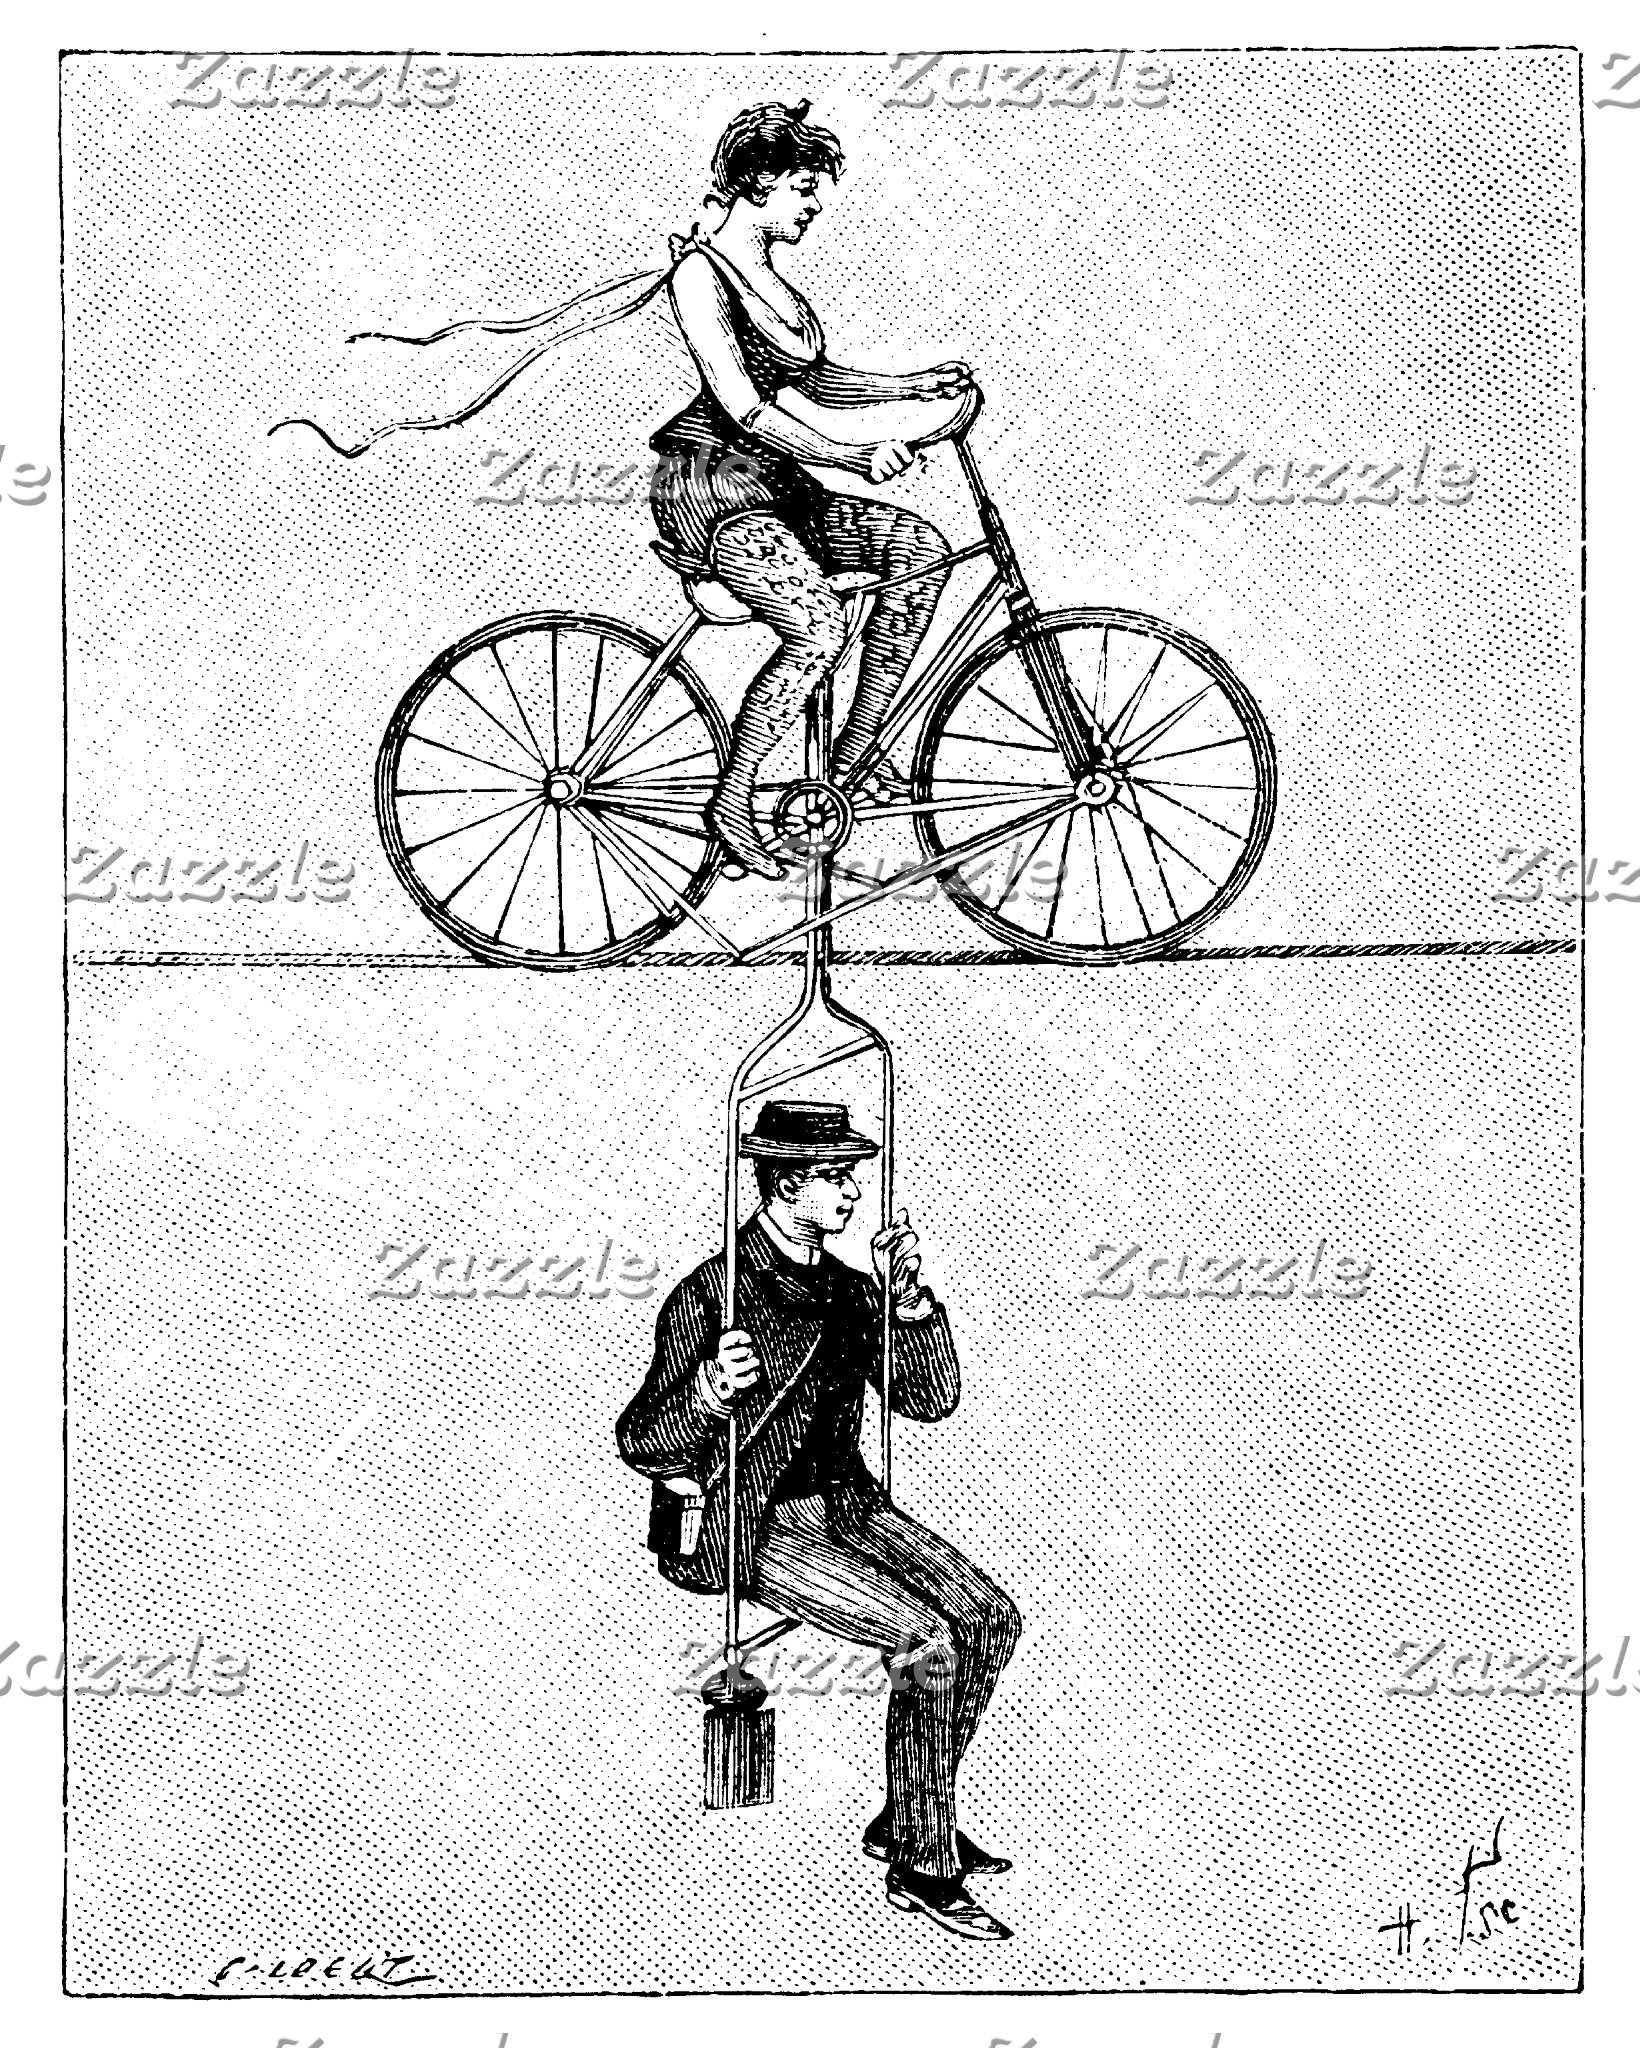 Bicycles - Vintage